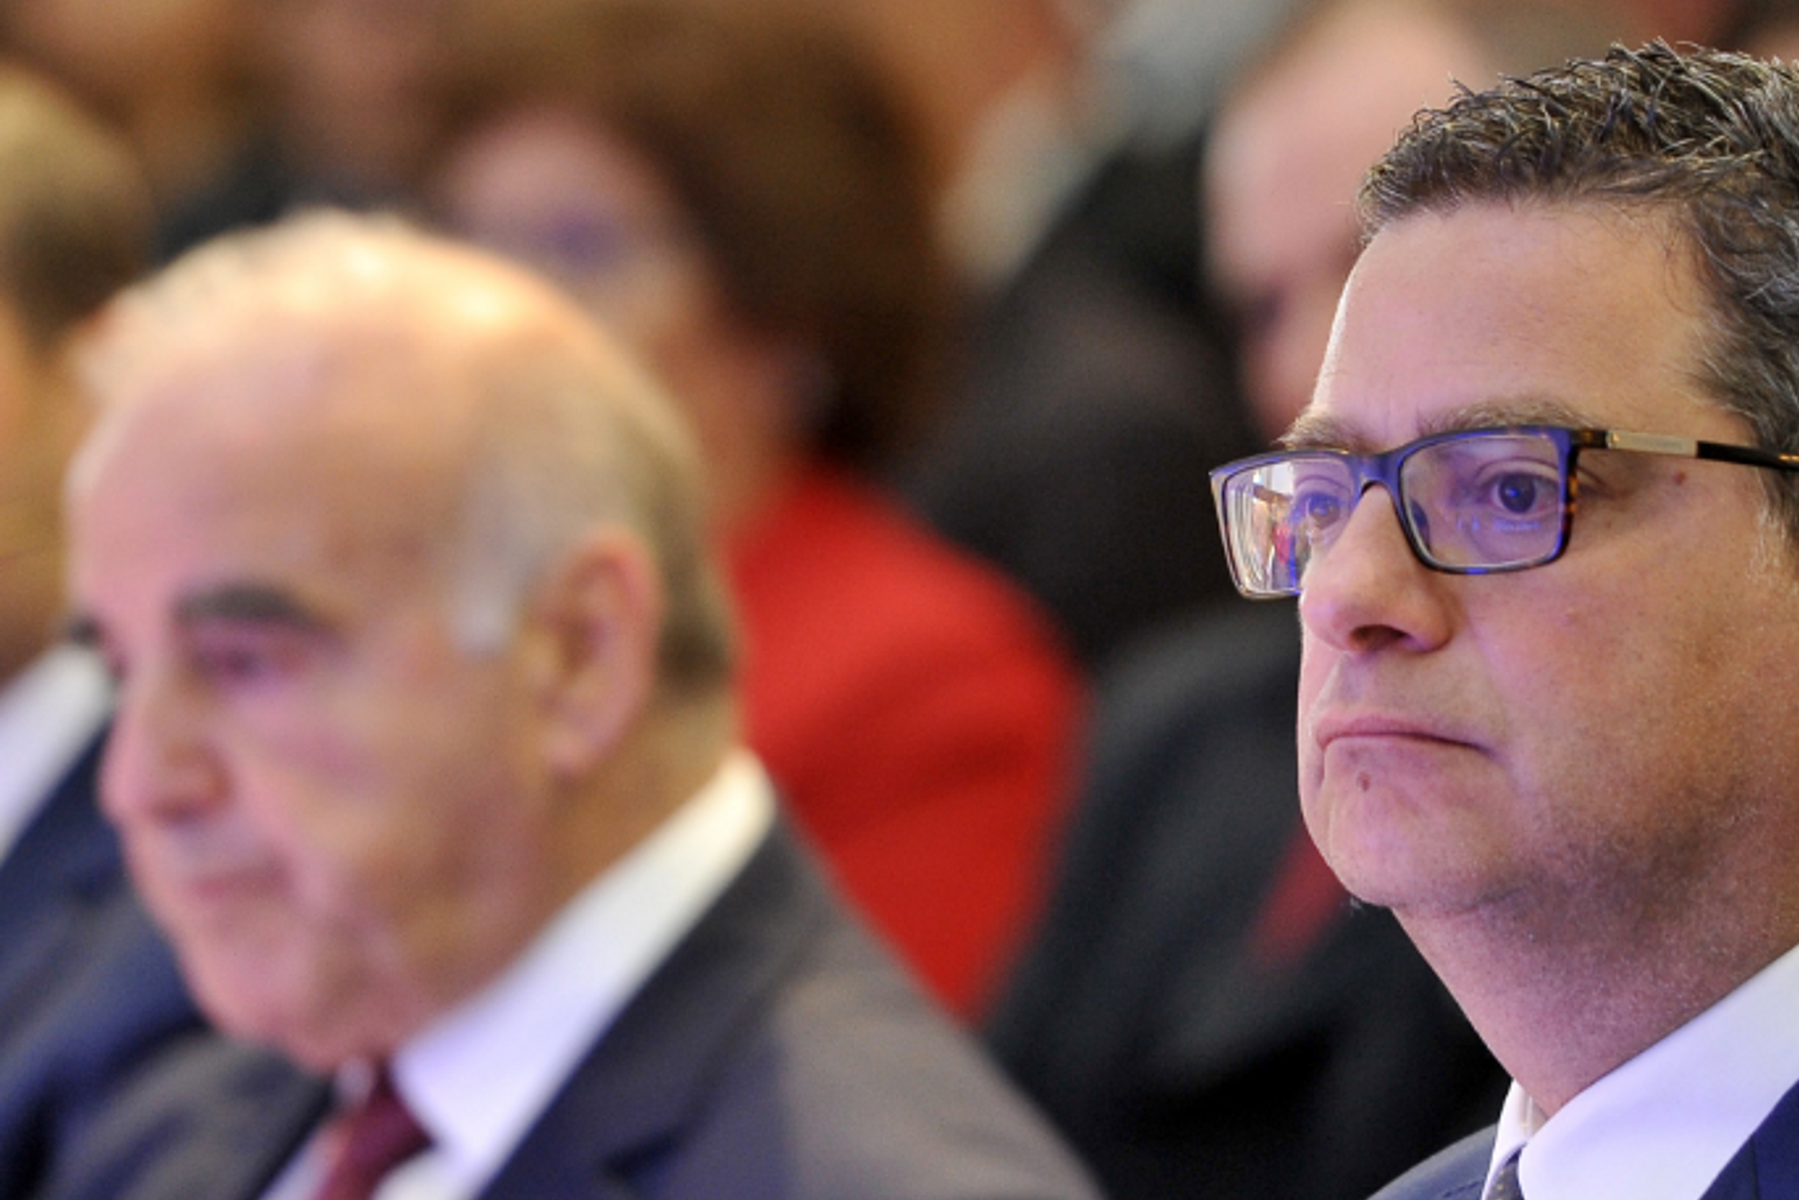 Opposition leader Adrian Delia could ask President George Vella to dissolve Parliament.